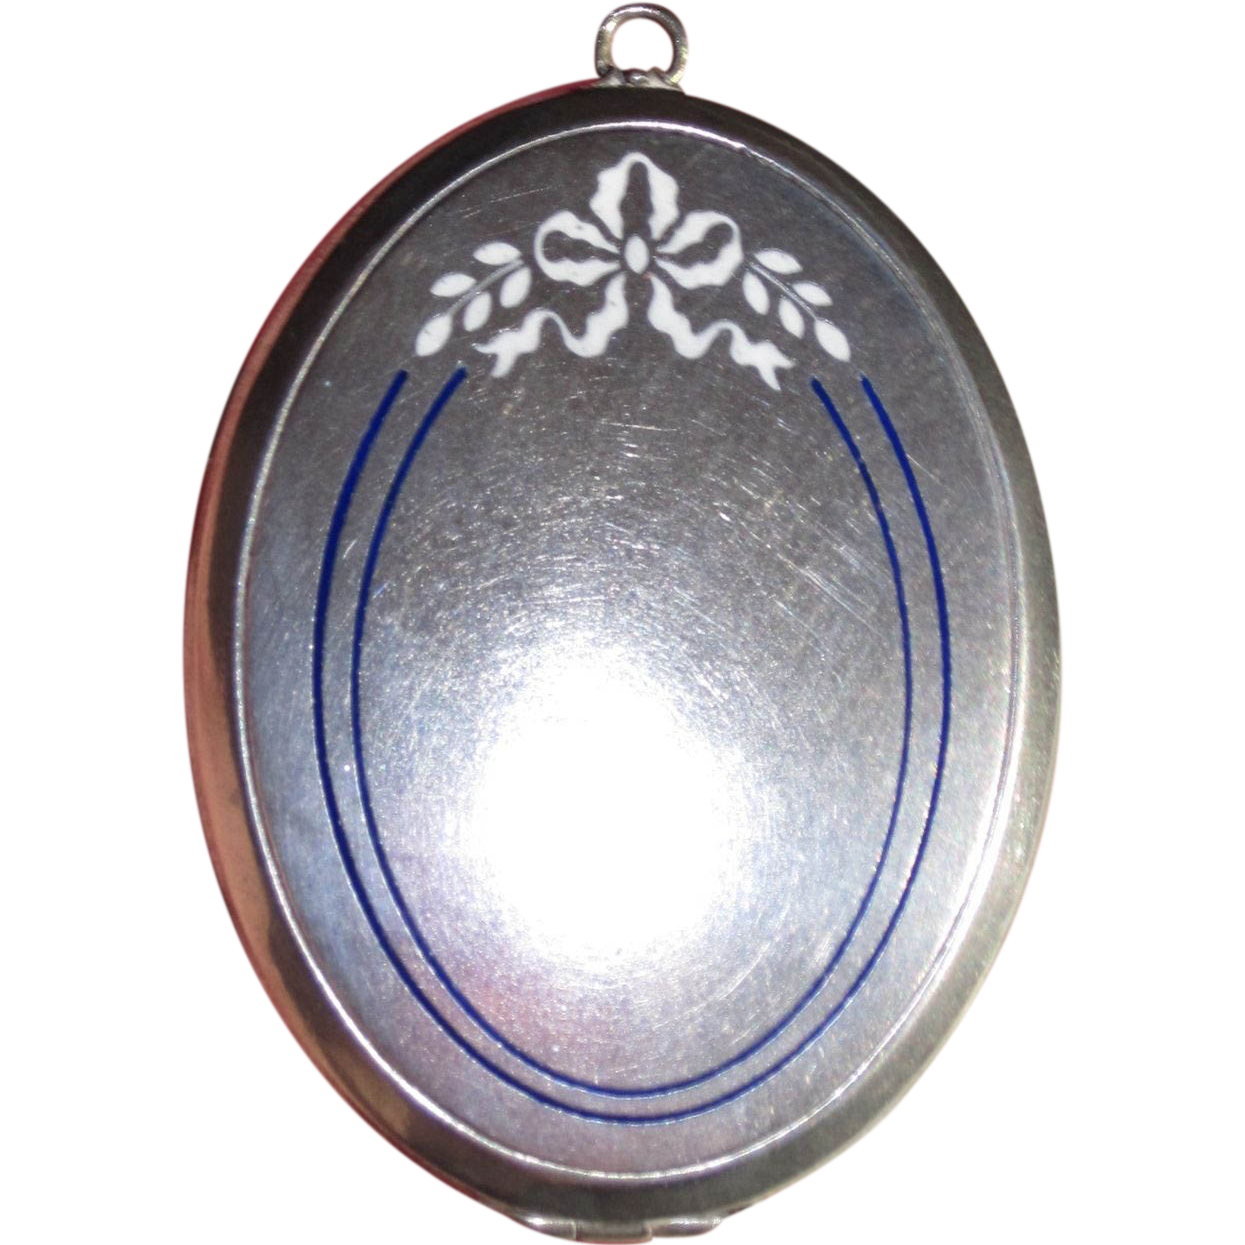 Large Silvertone Enamel Compact or Locket